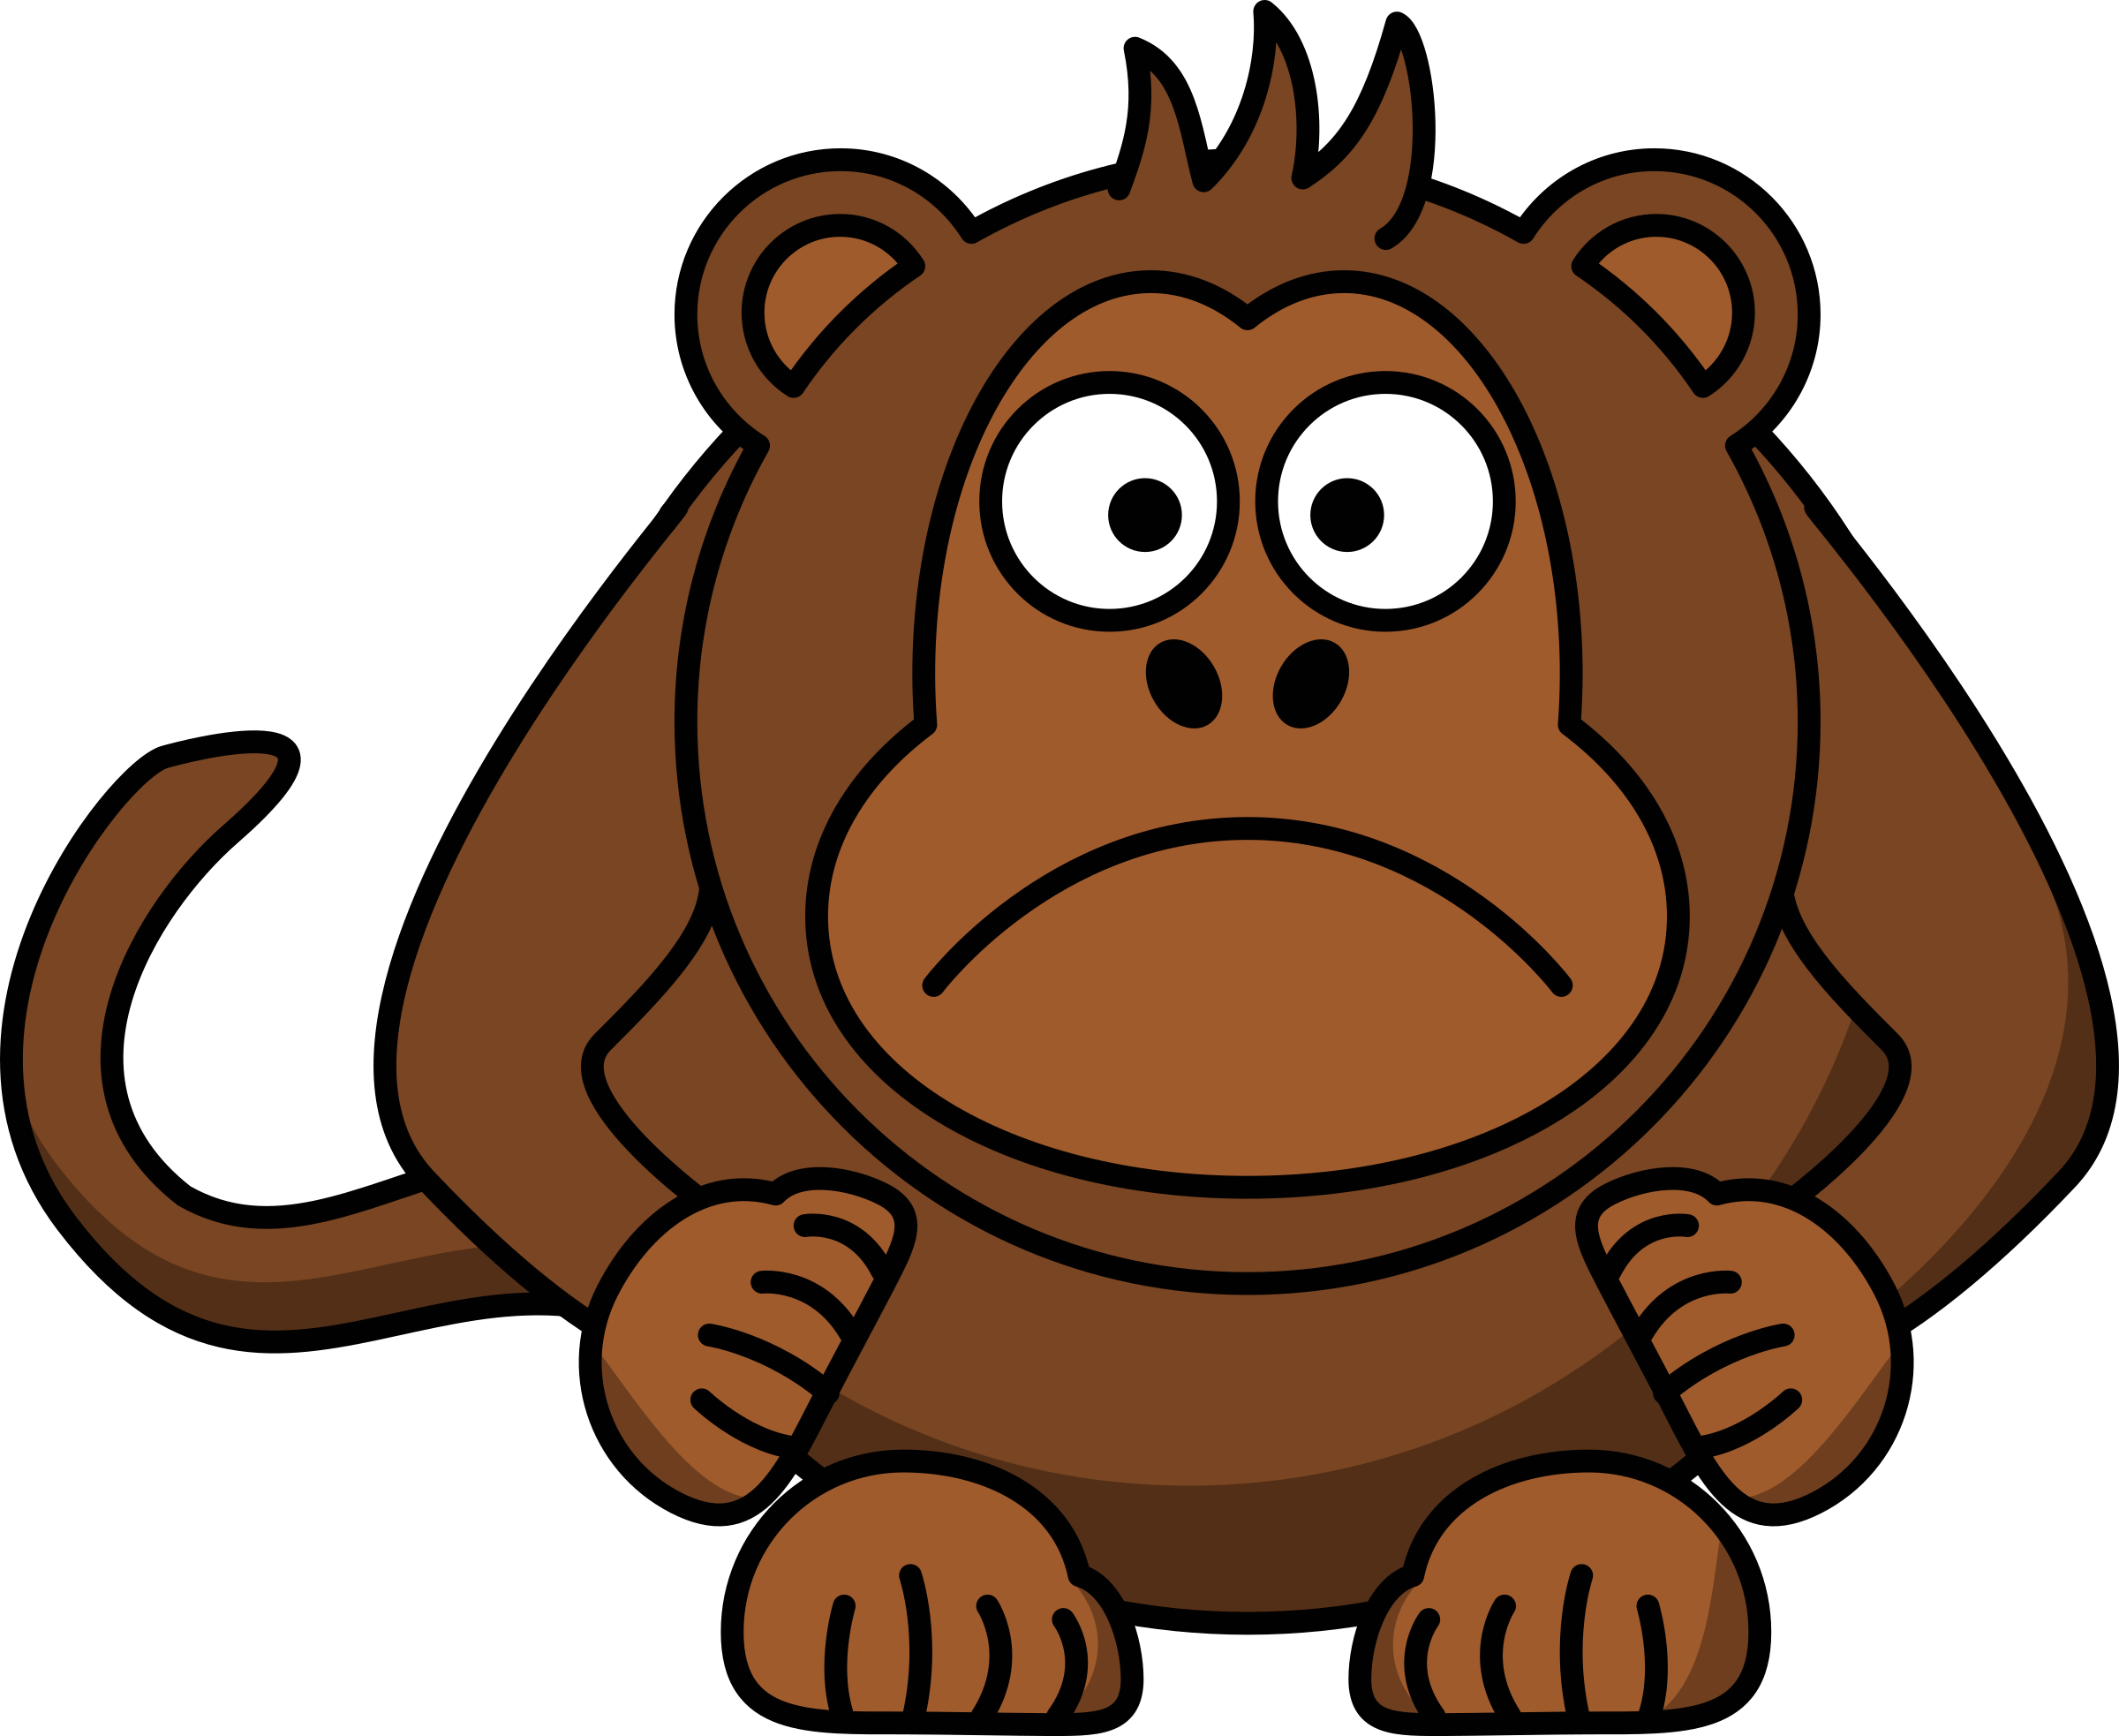 Angry Cartoon monkey by kuba